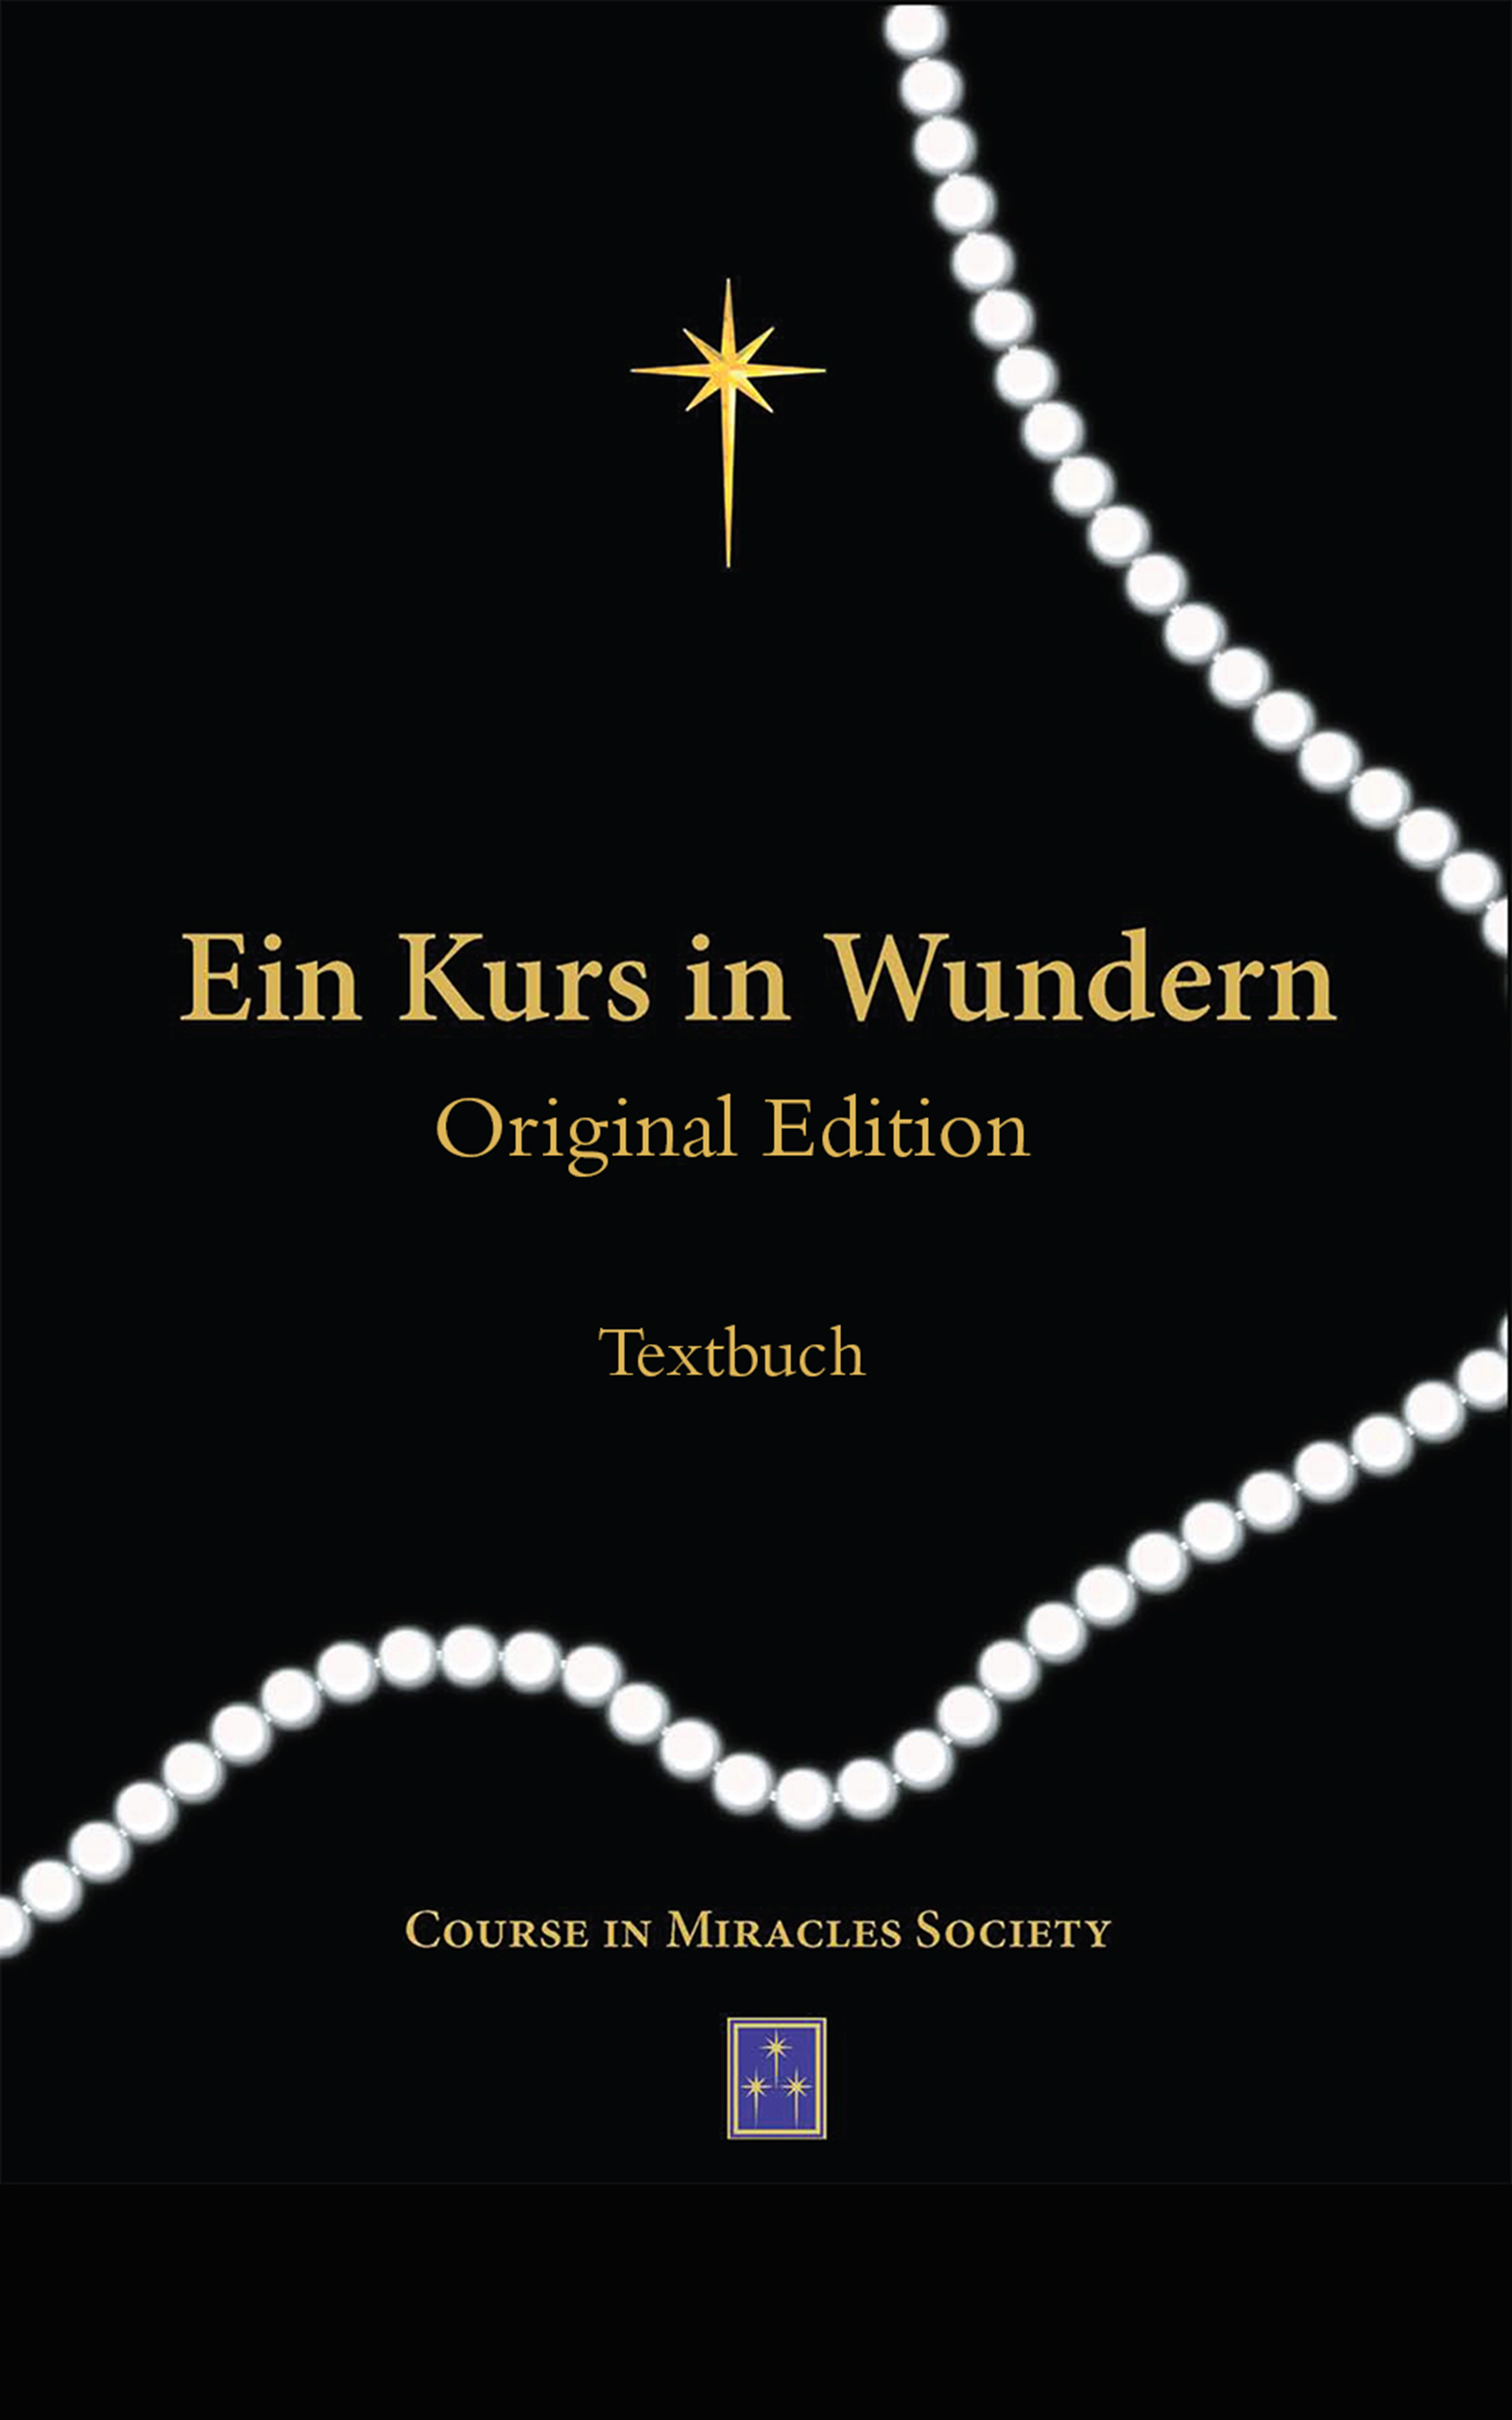 EIN KURS IN WUNDERN KINDLE Textbuch